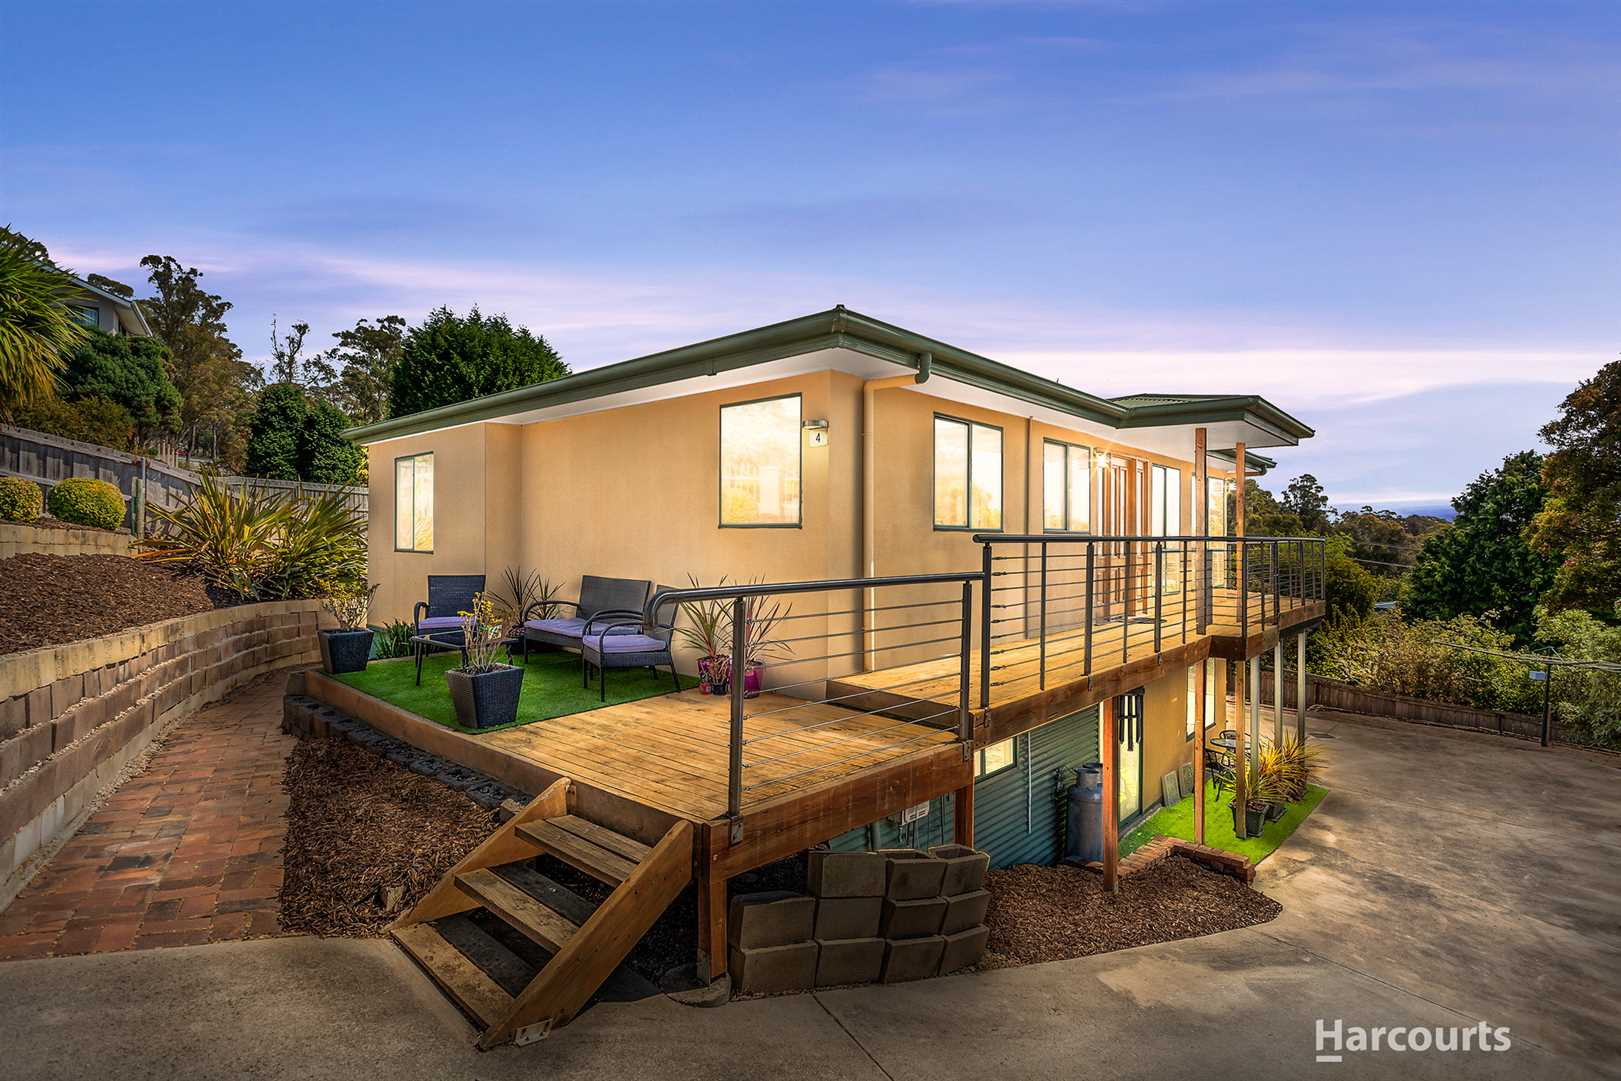 Open Home:  Sat 20th Oct 11.00 - 11.30